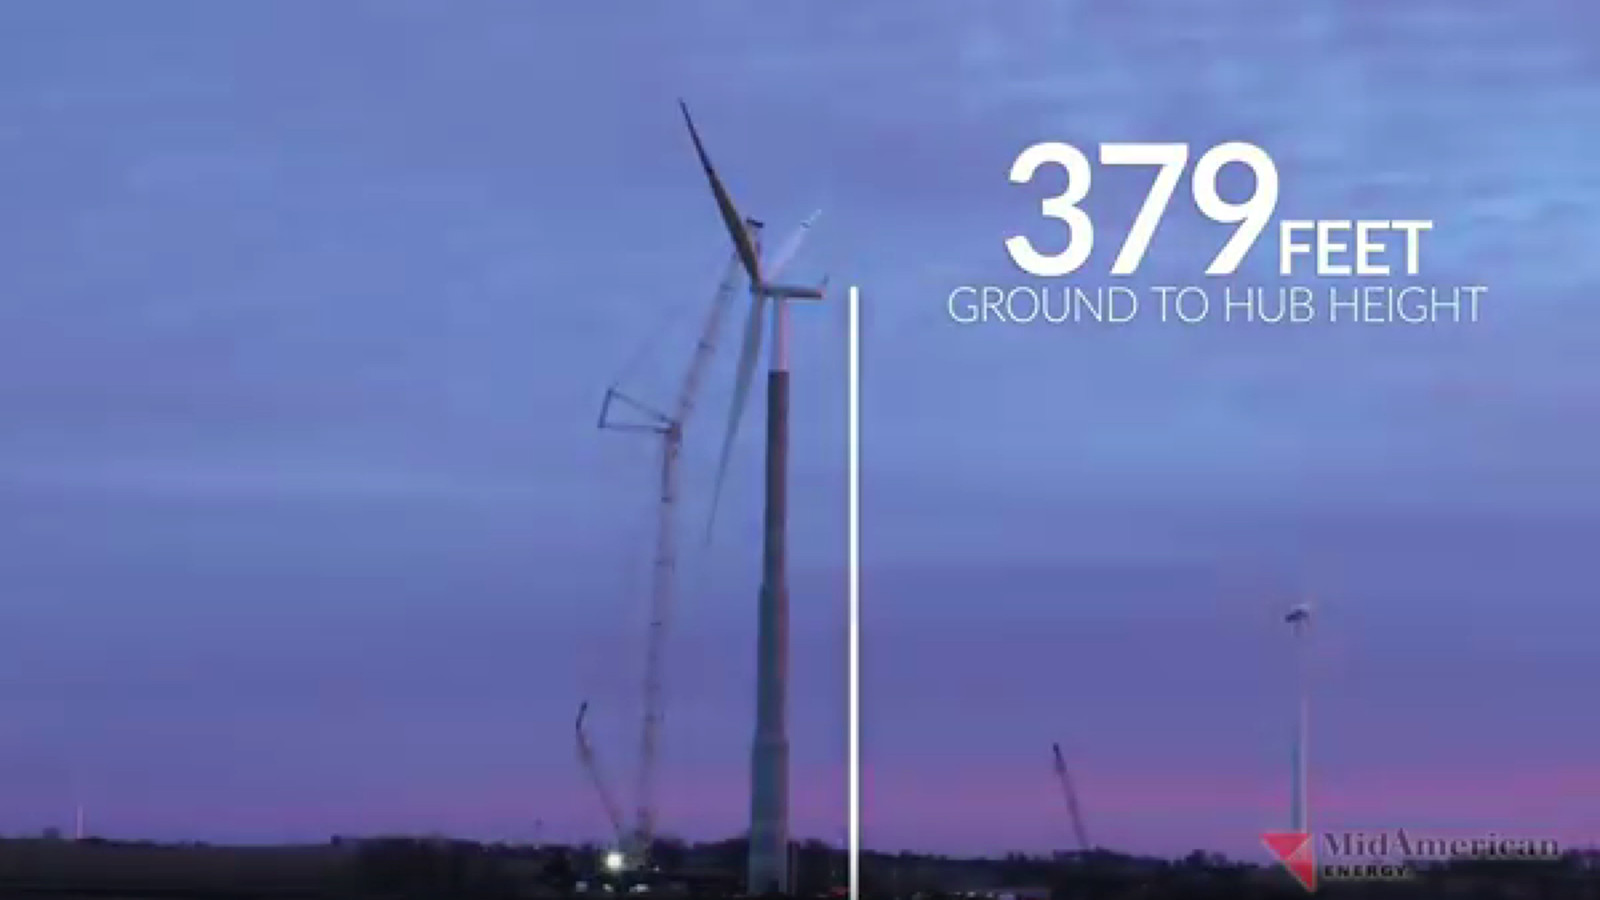 The tallest wind power tower in the US, assembled in one hypnotizing ...